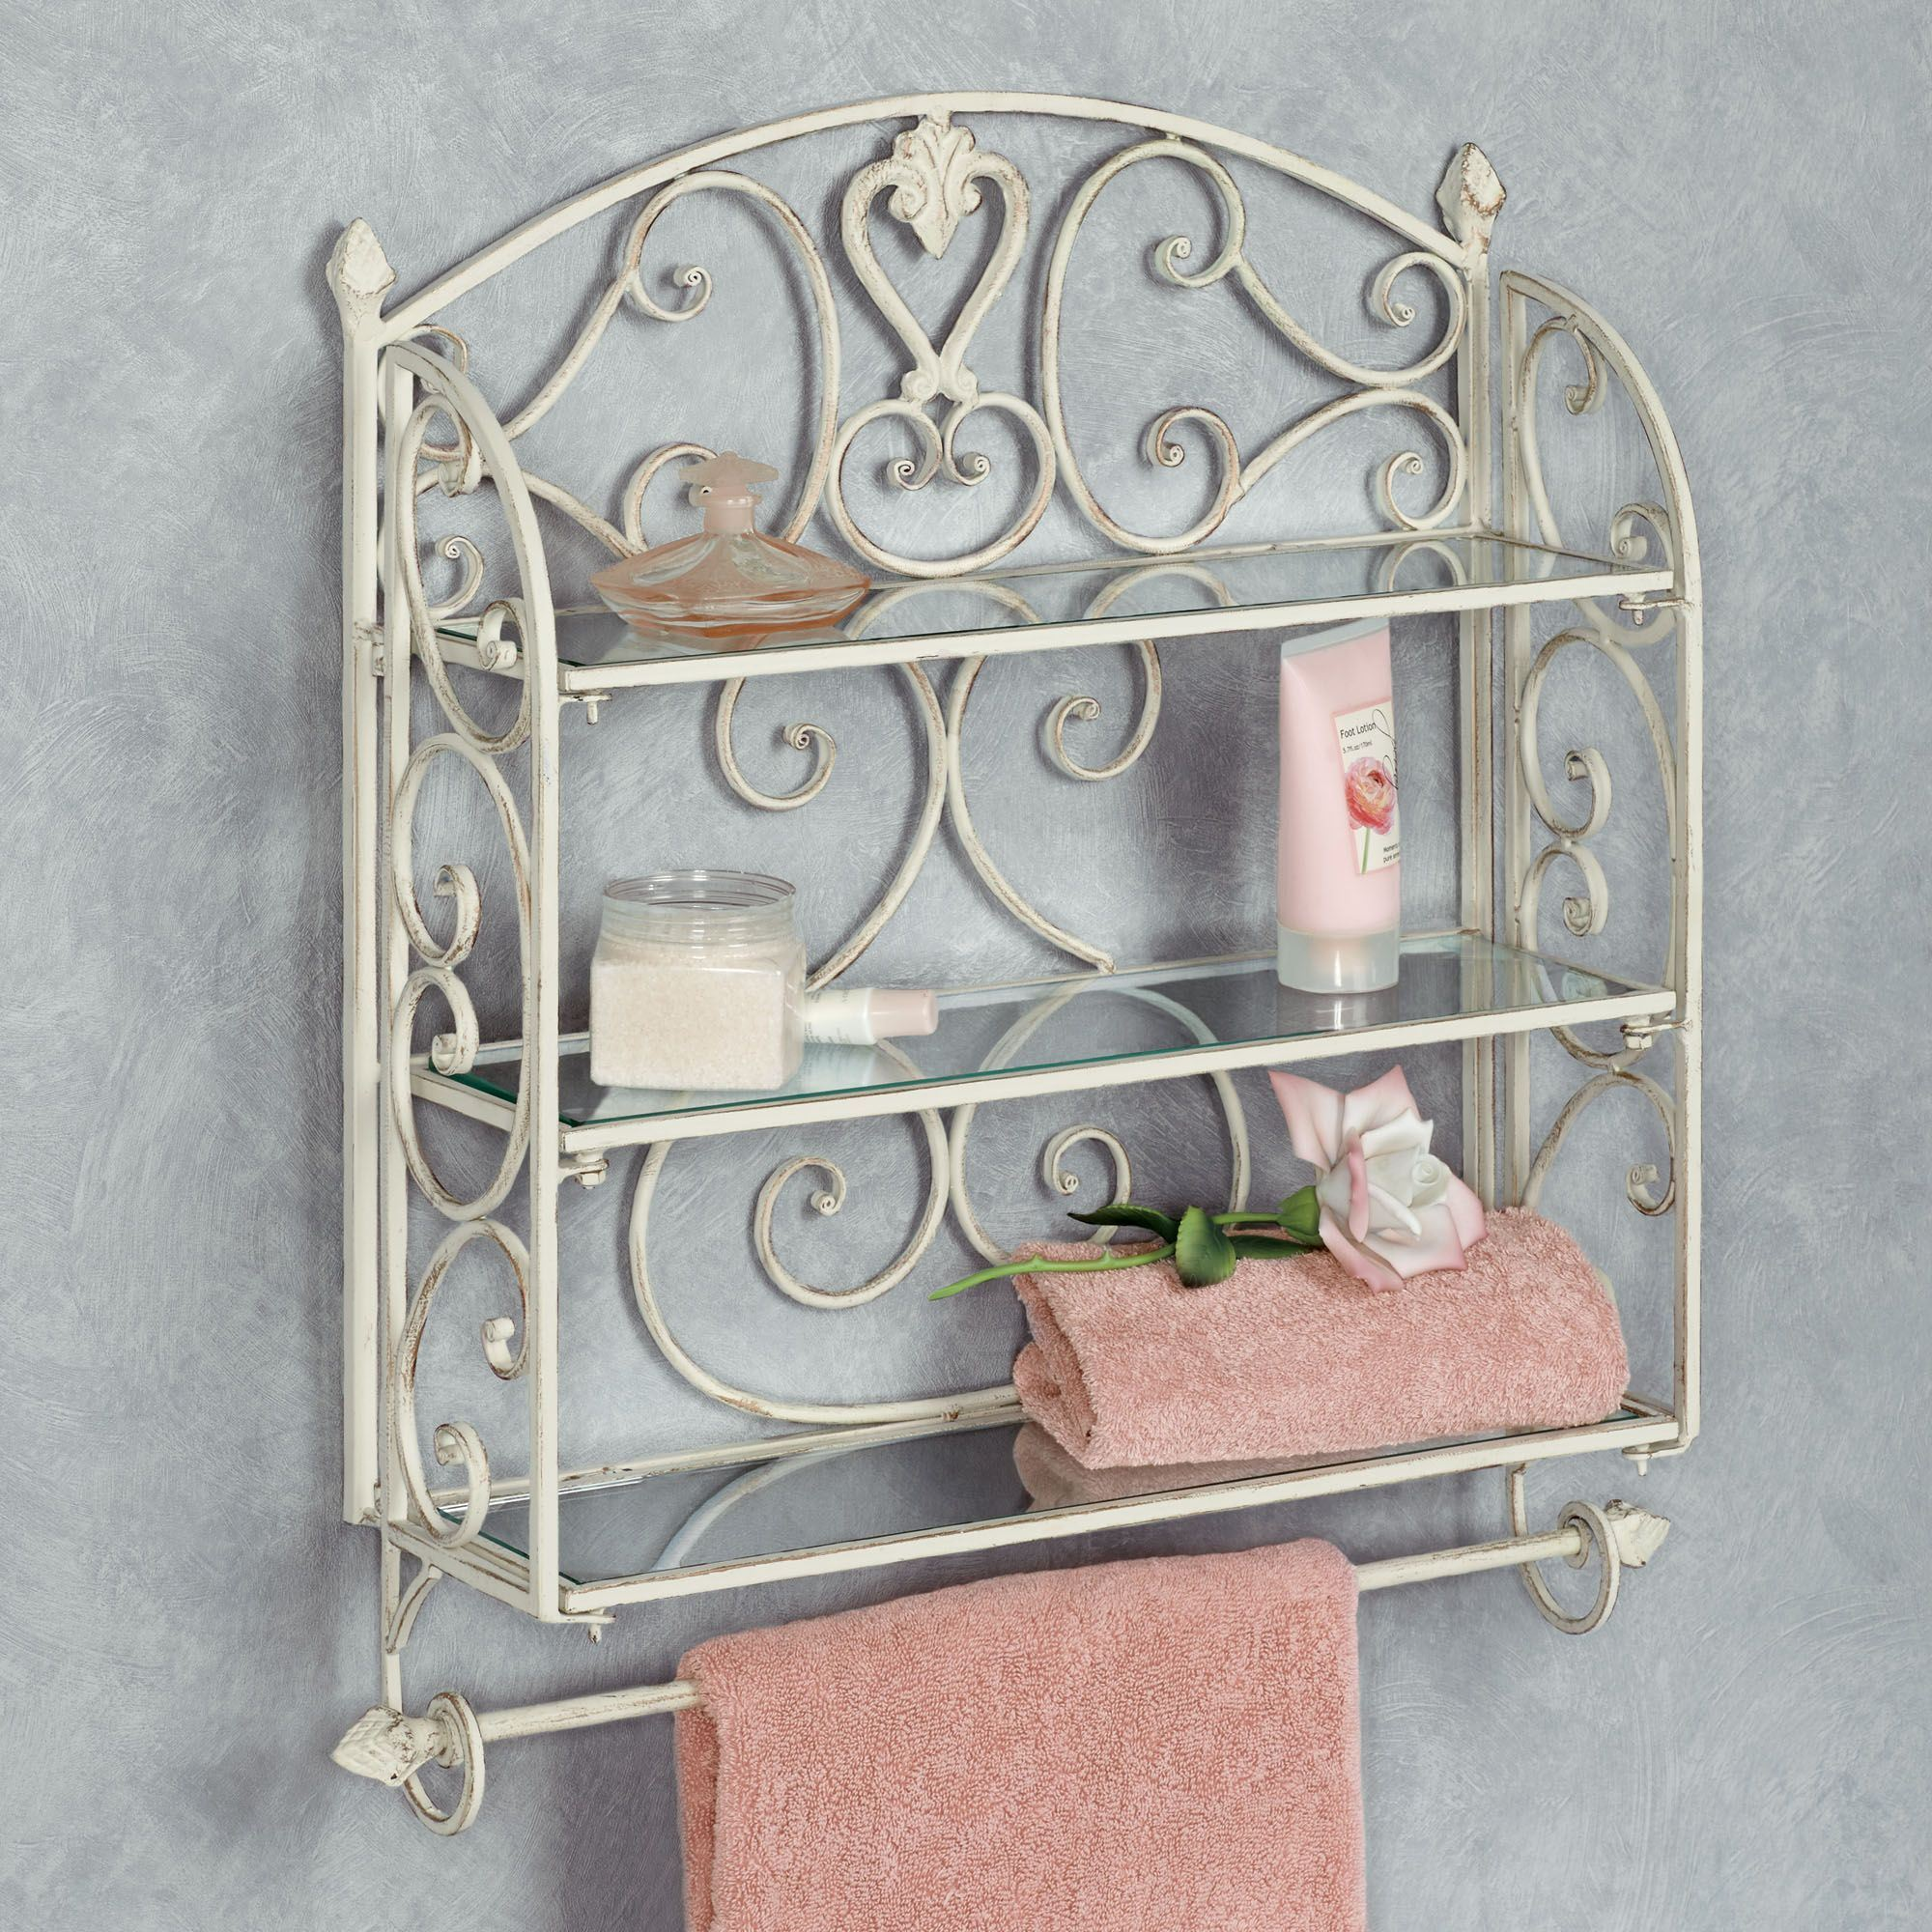 Aldabella Creamy Gold Wall Shelf Towel Bar. Touch To Zoom